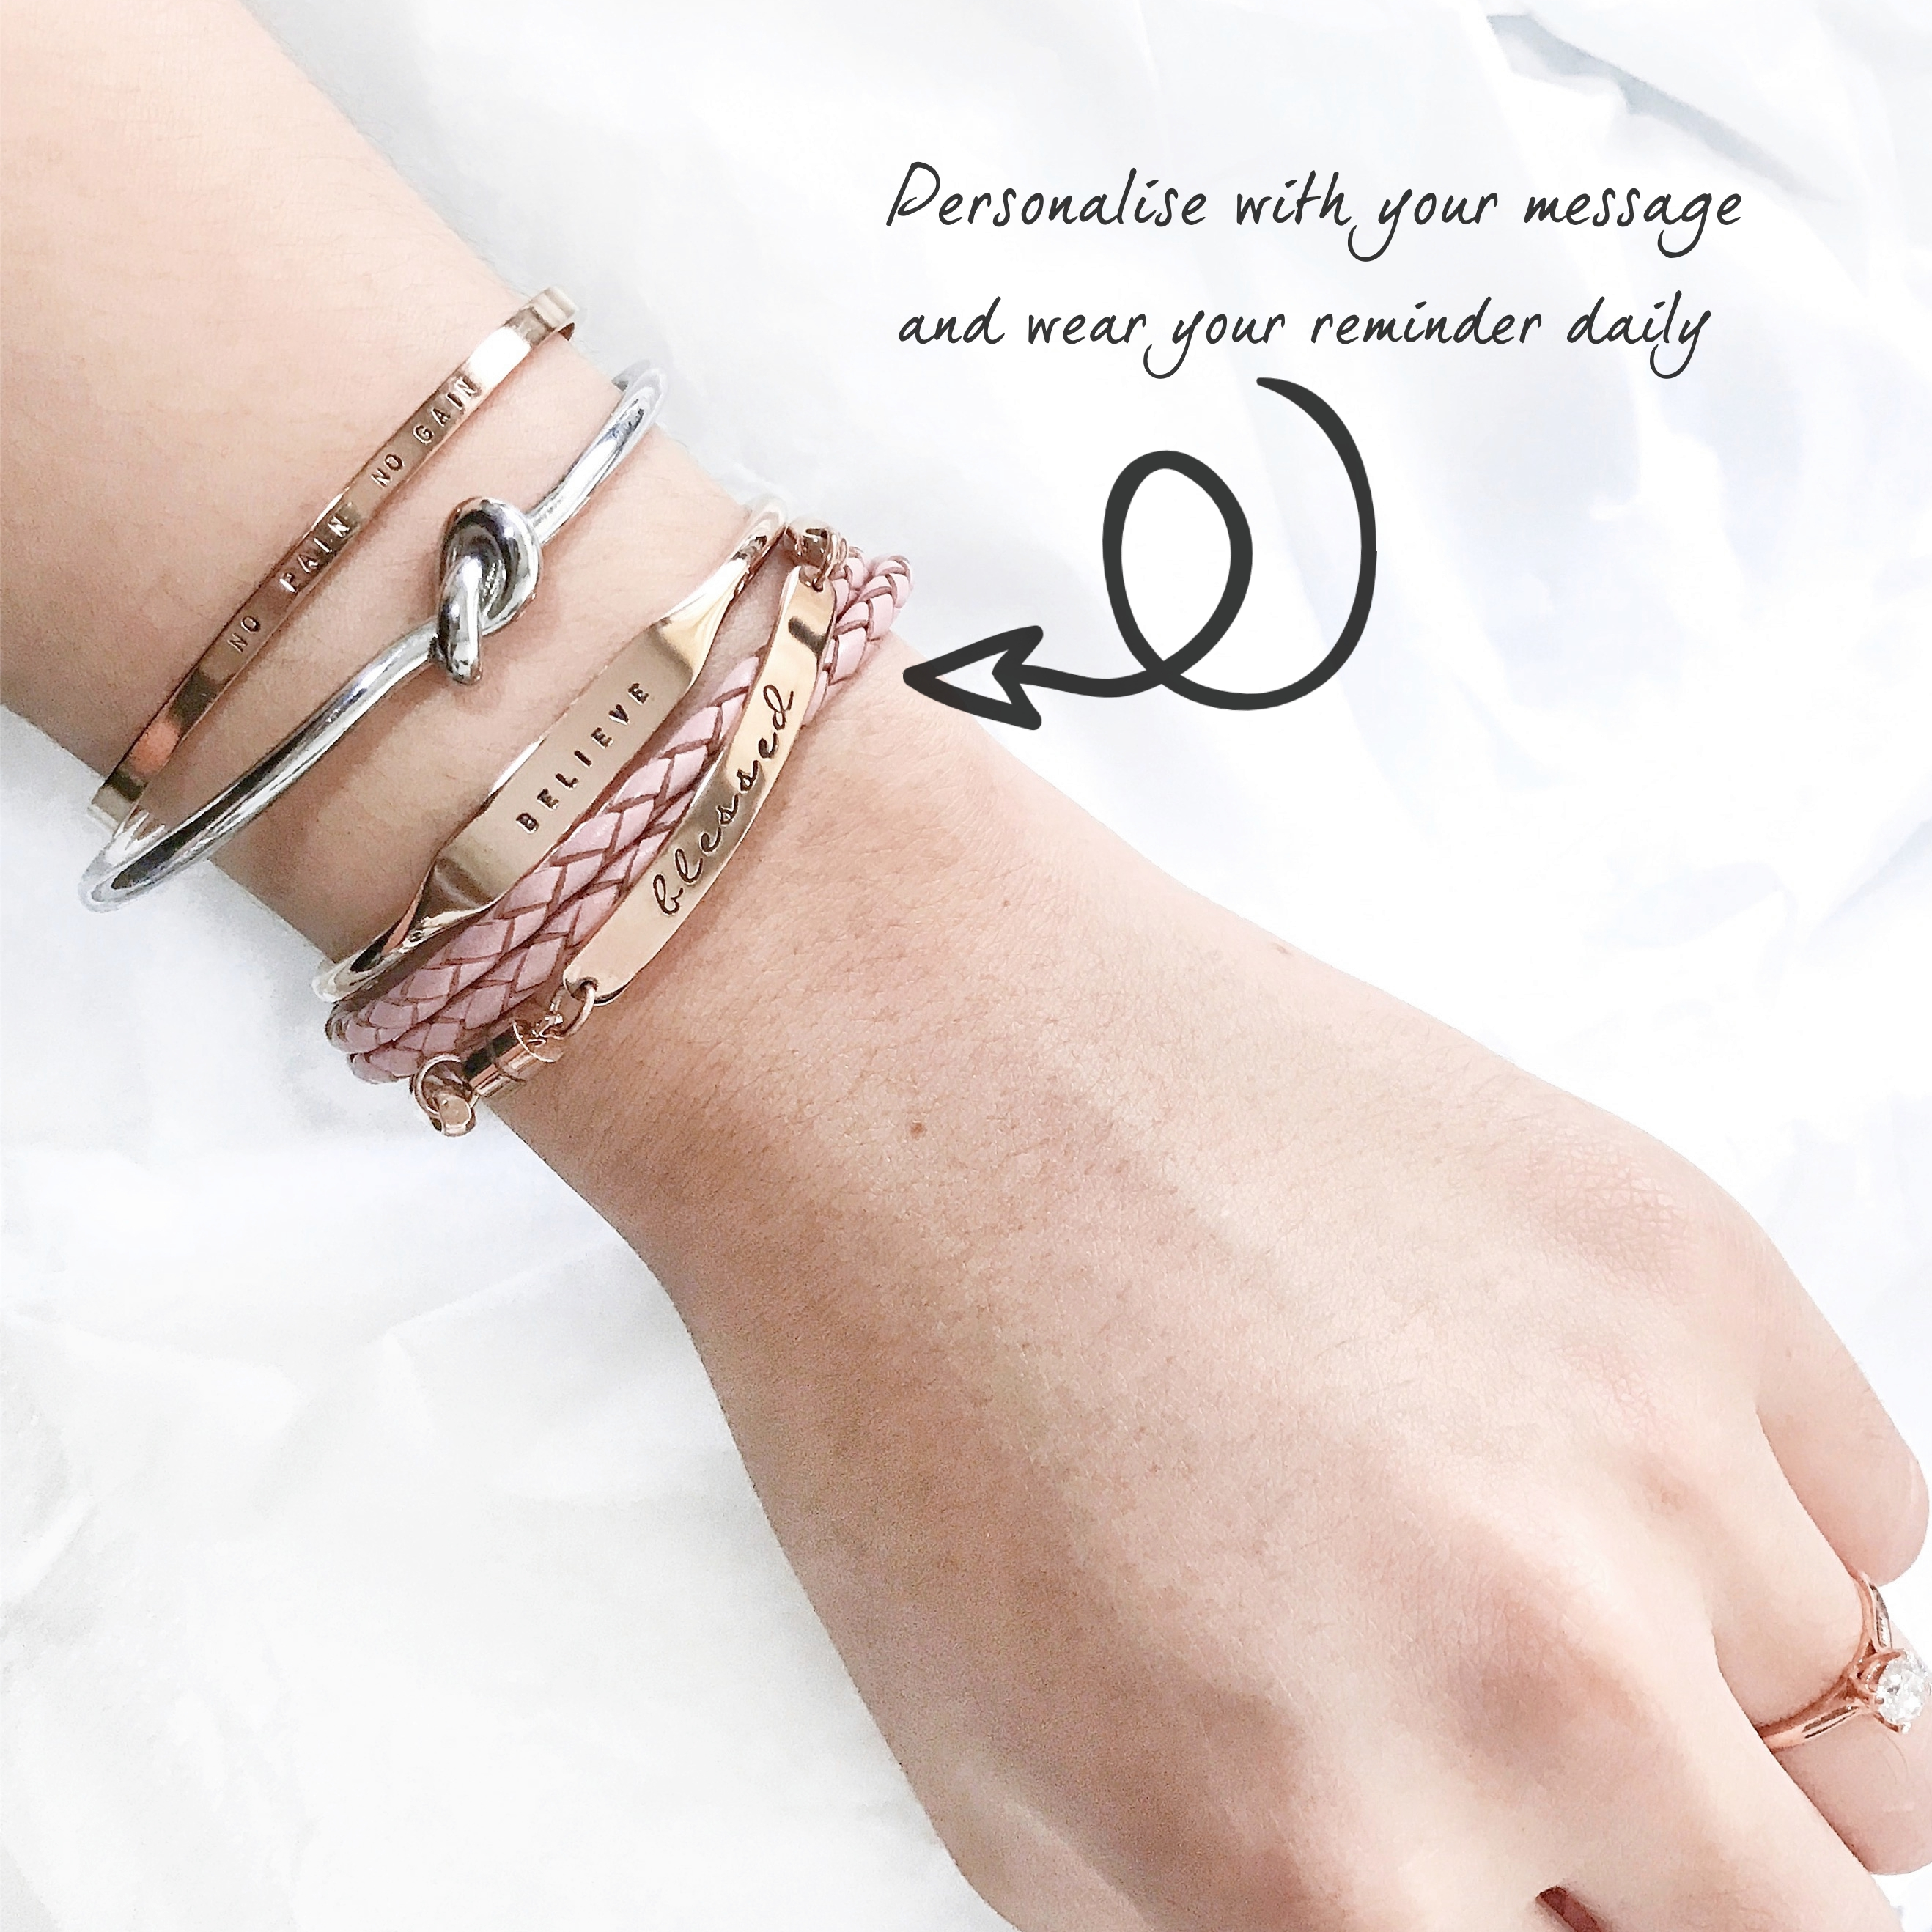 Top 5 Picks for Daily Wear Jewellery